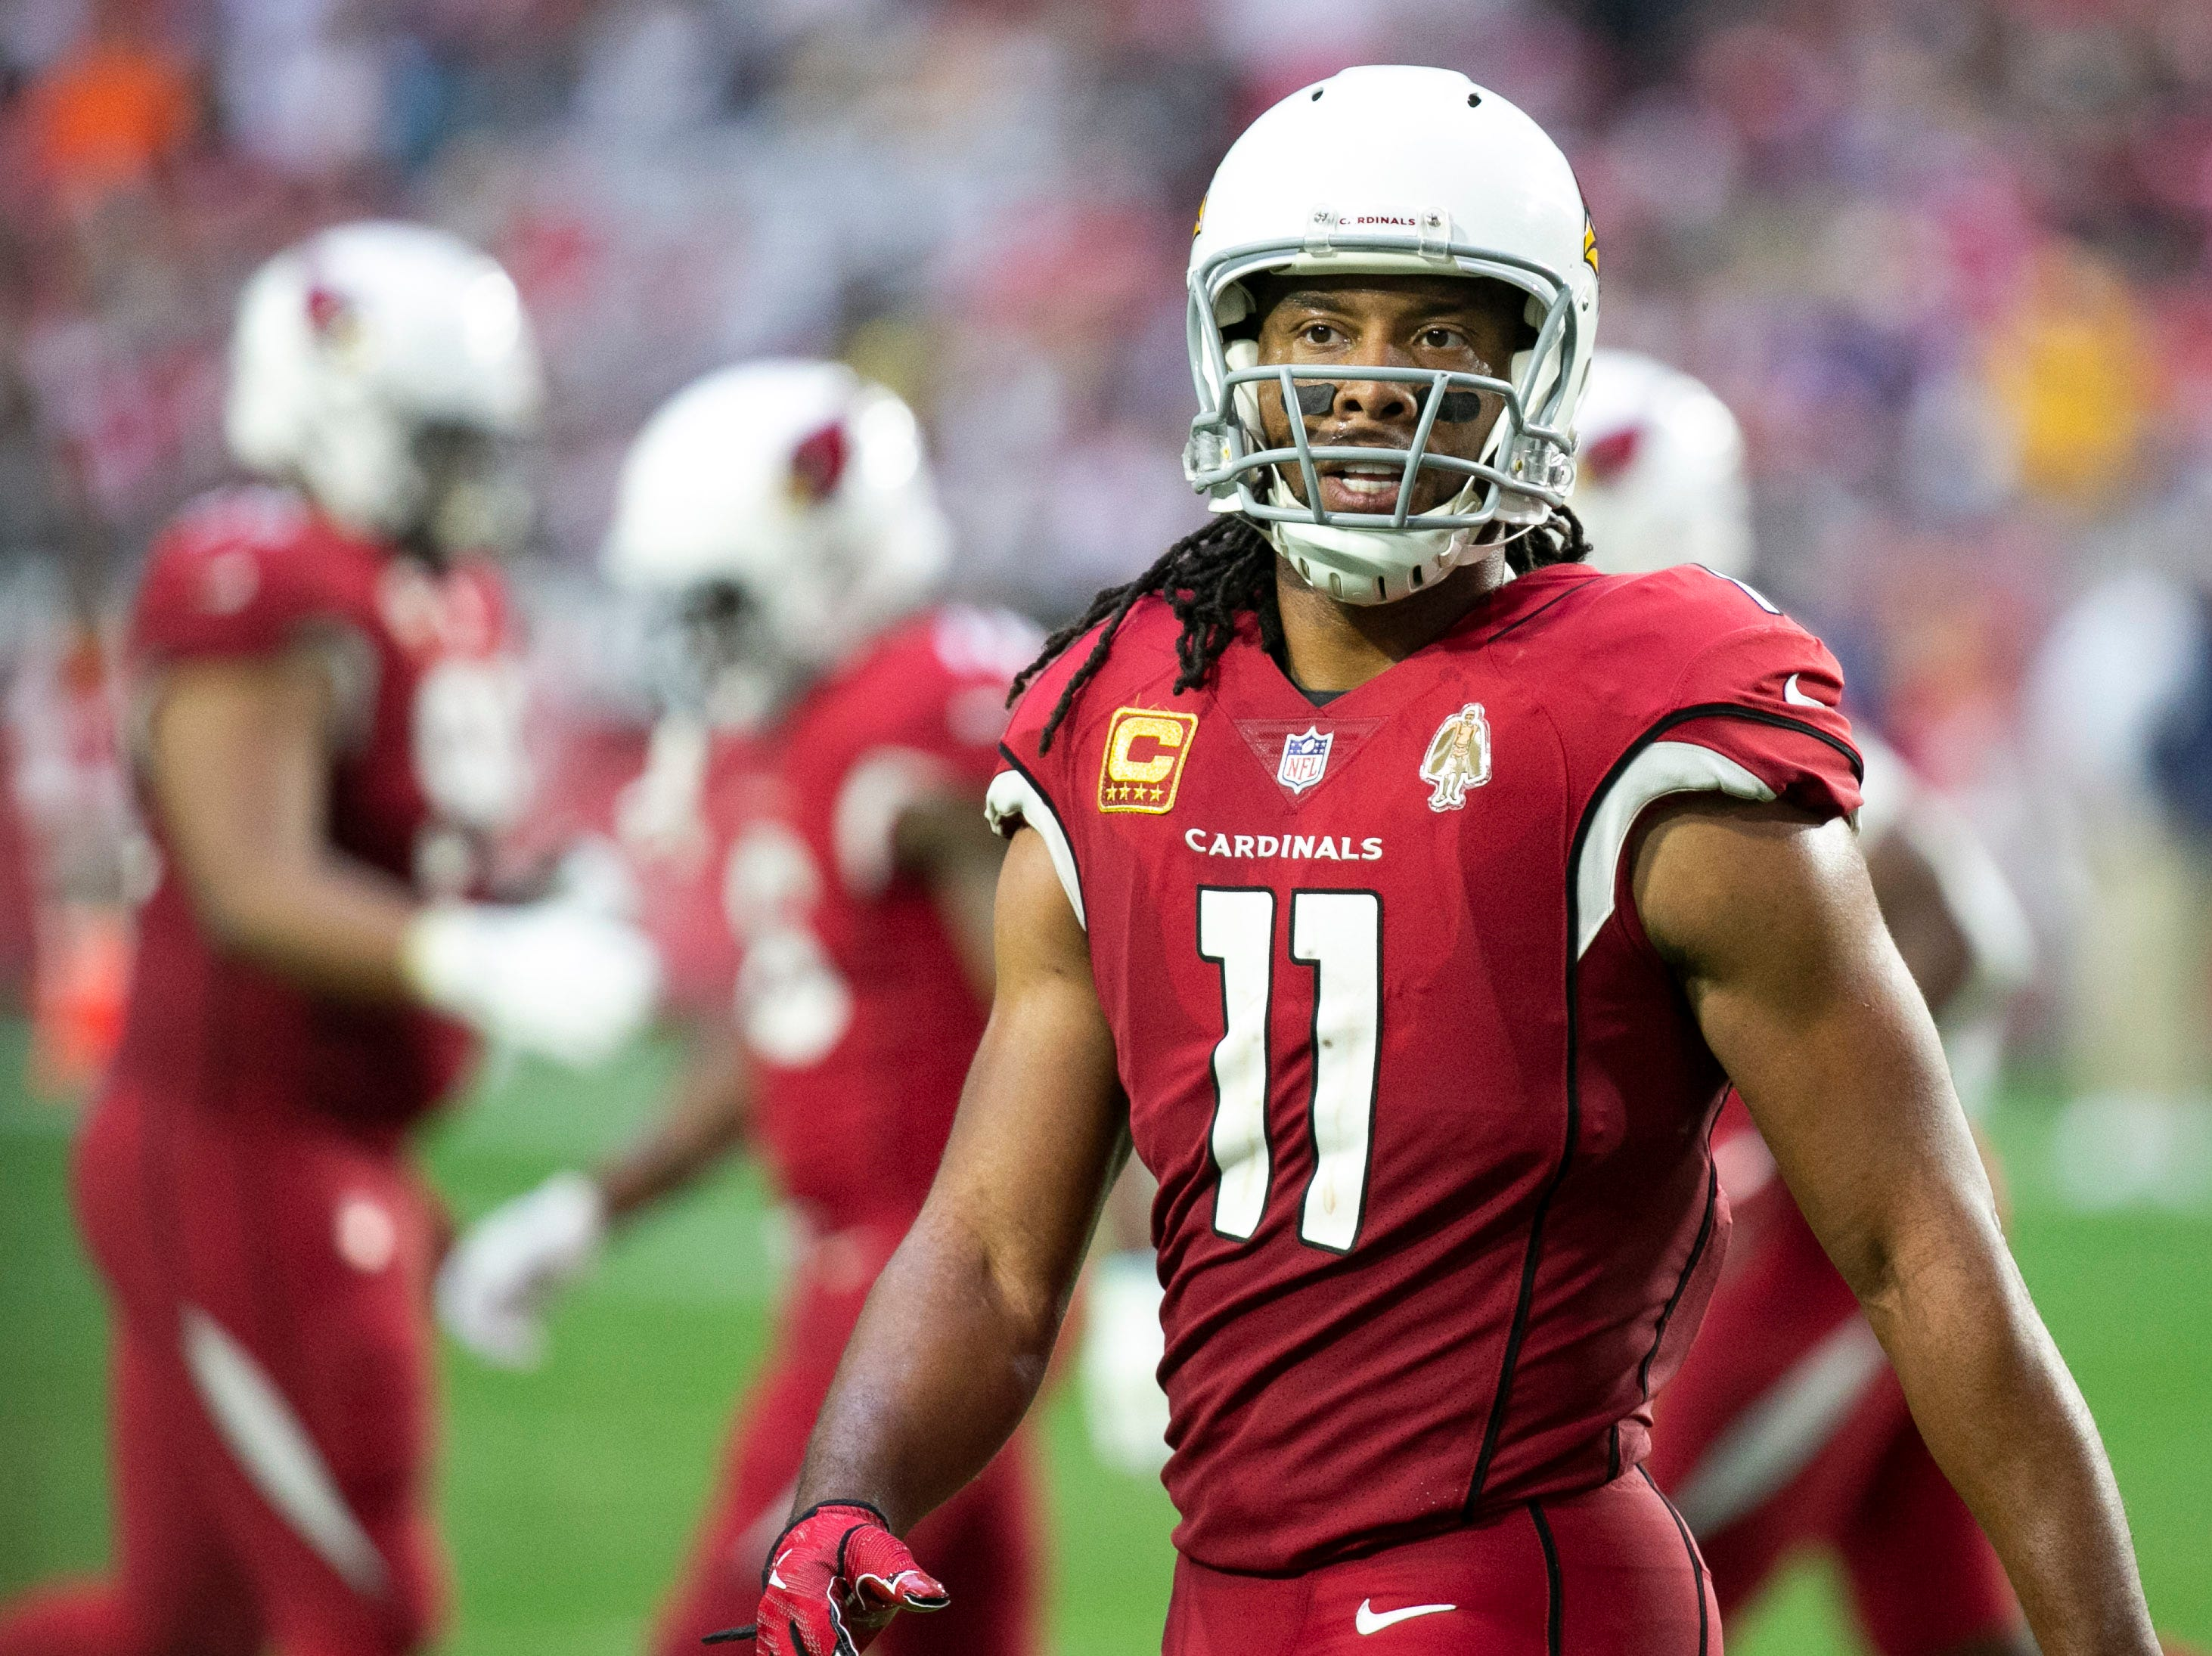 Cardinals wide receiver Larry Fitzgerald looks on during the fourth quarter of the NFL game against the Rams at State Farm Stadium in Glendale on Sunday, December 23, 2018.